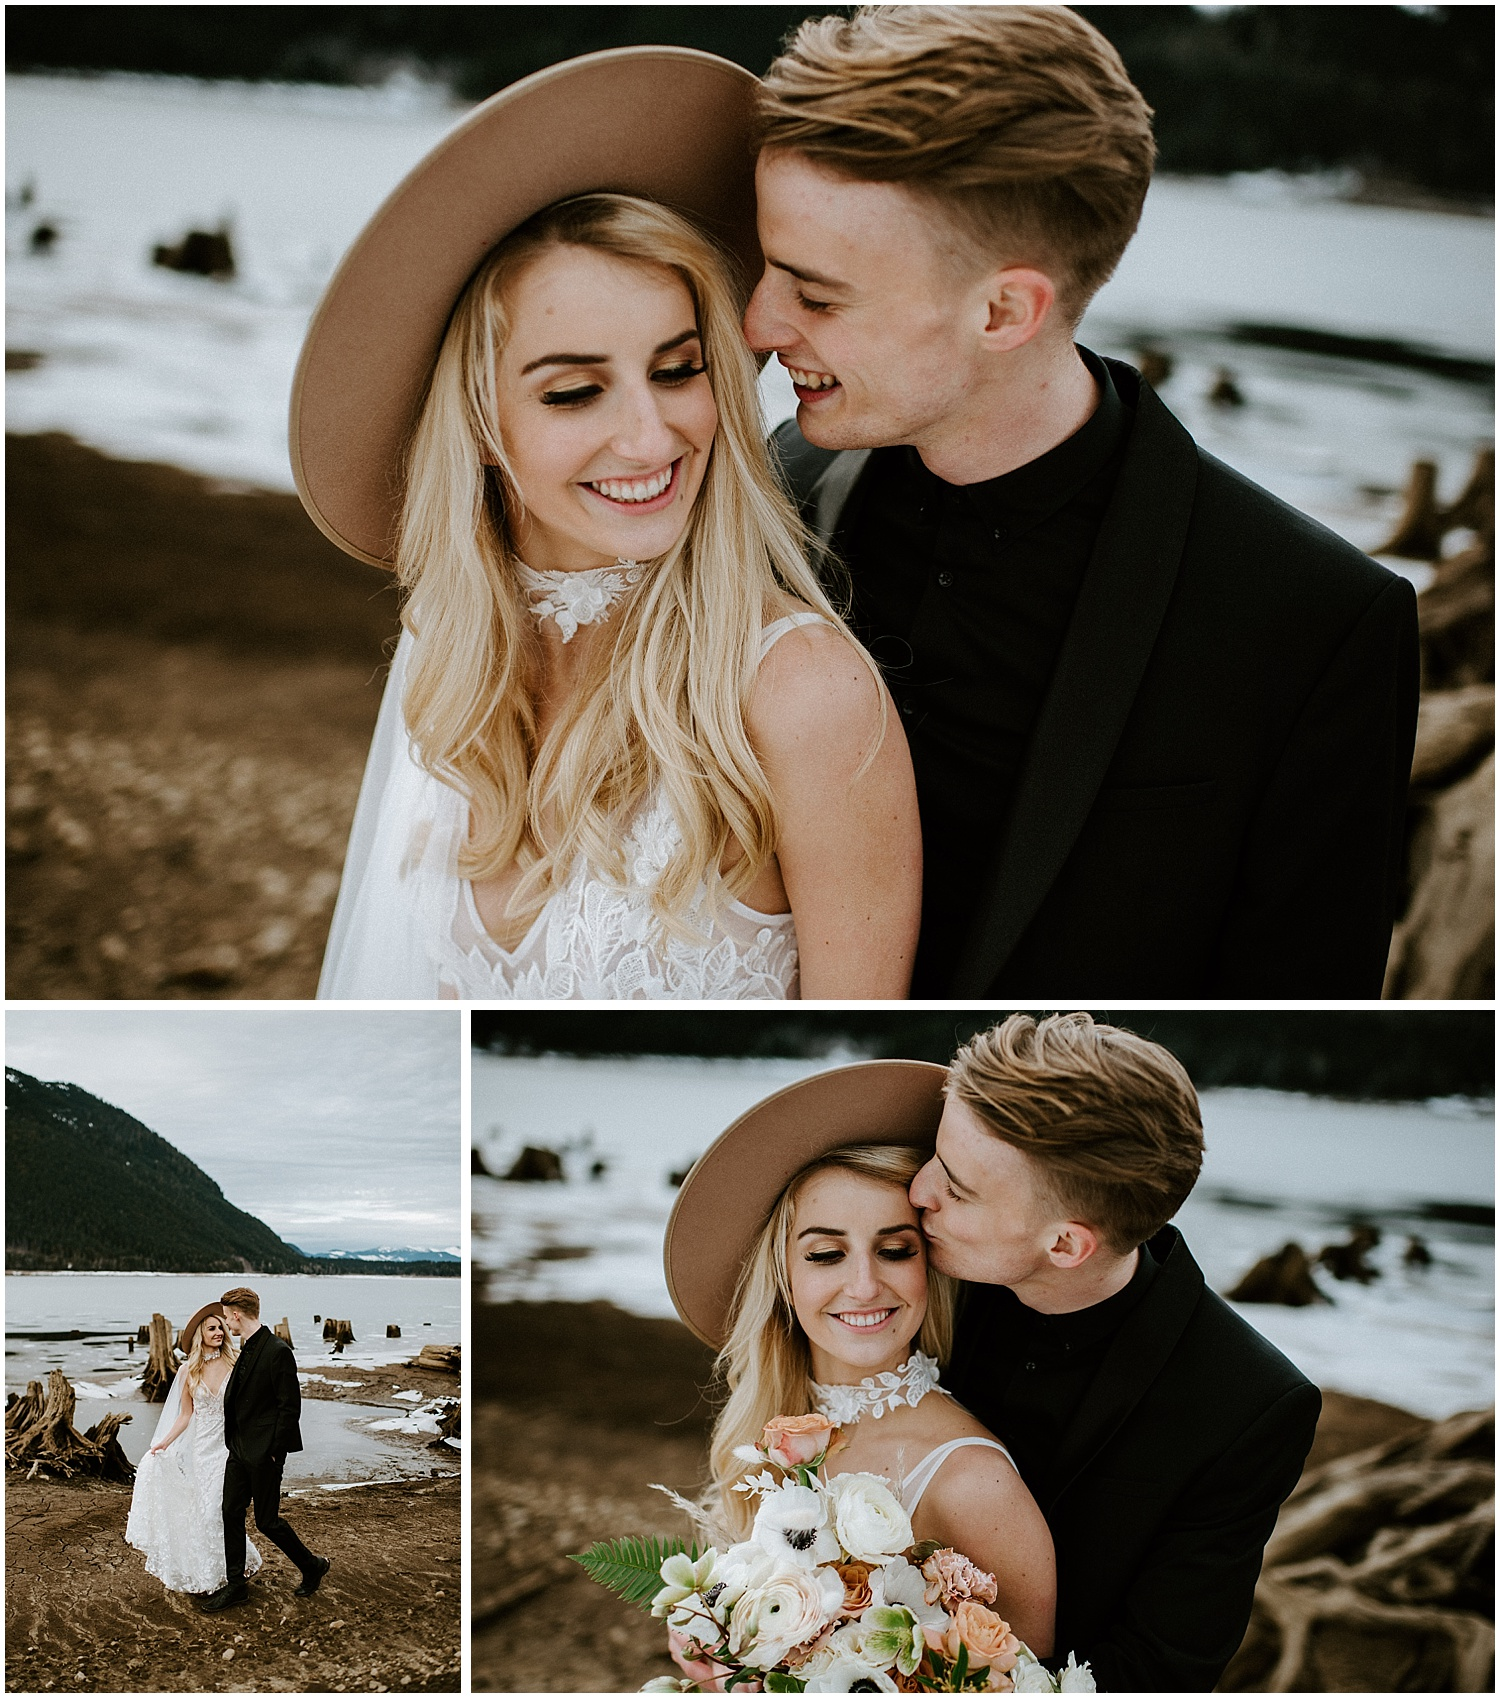 Jones_Lake_wedding_winter_elopement_vancouver_photographer_0260.jpg